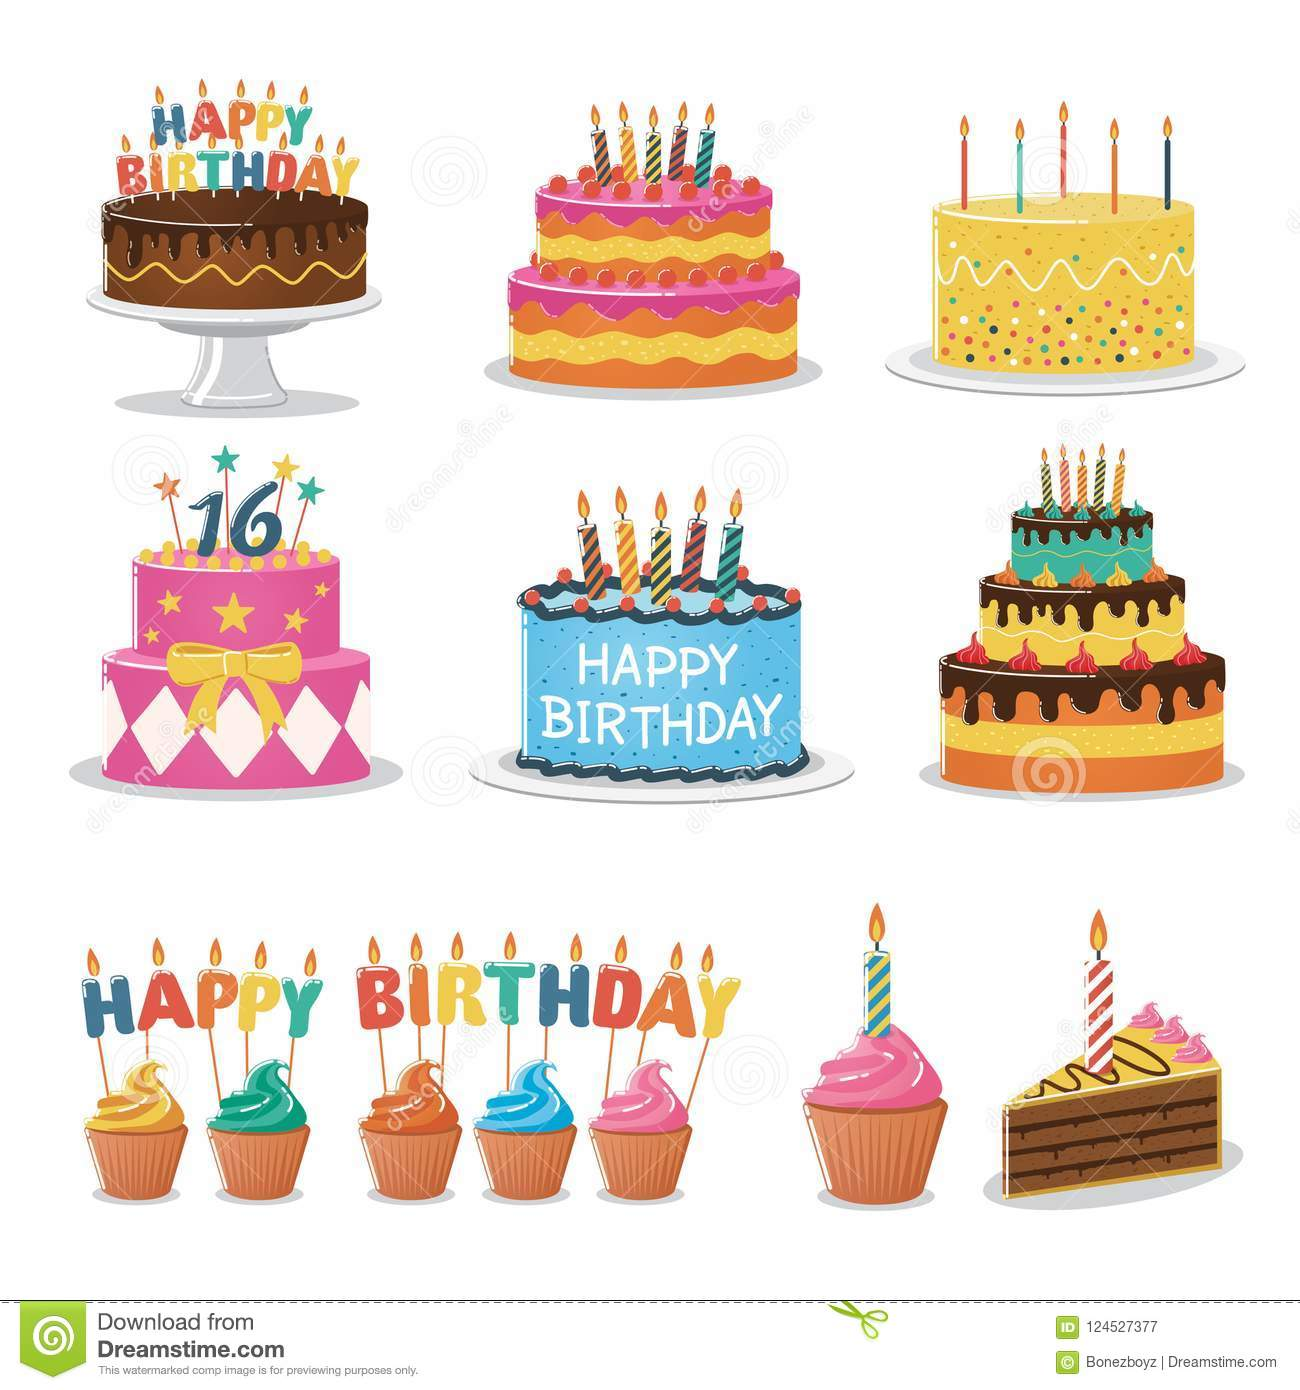 Stupendous Set Of Birthday Cakes Birthday Party Elements Stock Vector Funny Birthday Cards Online Elaedamsfinfo